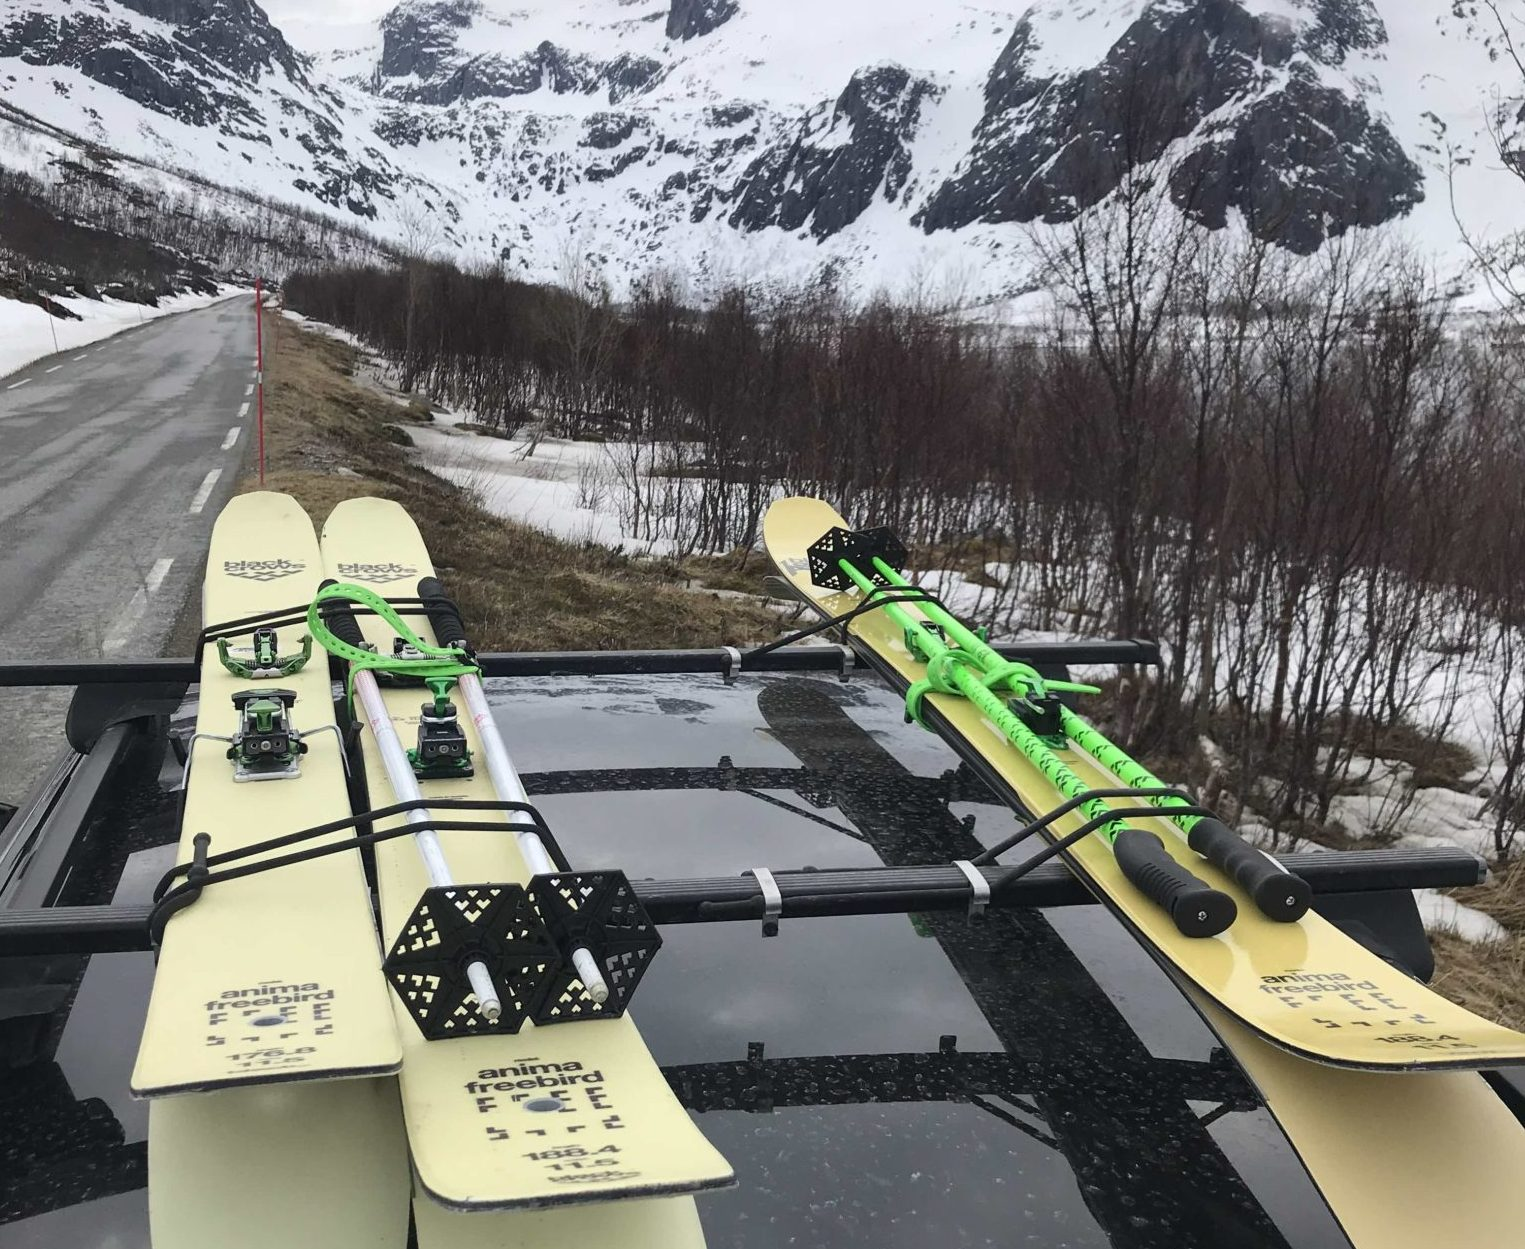 Skis in norway